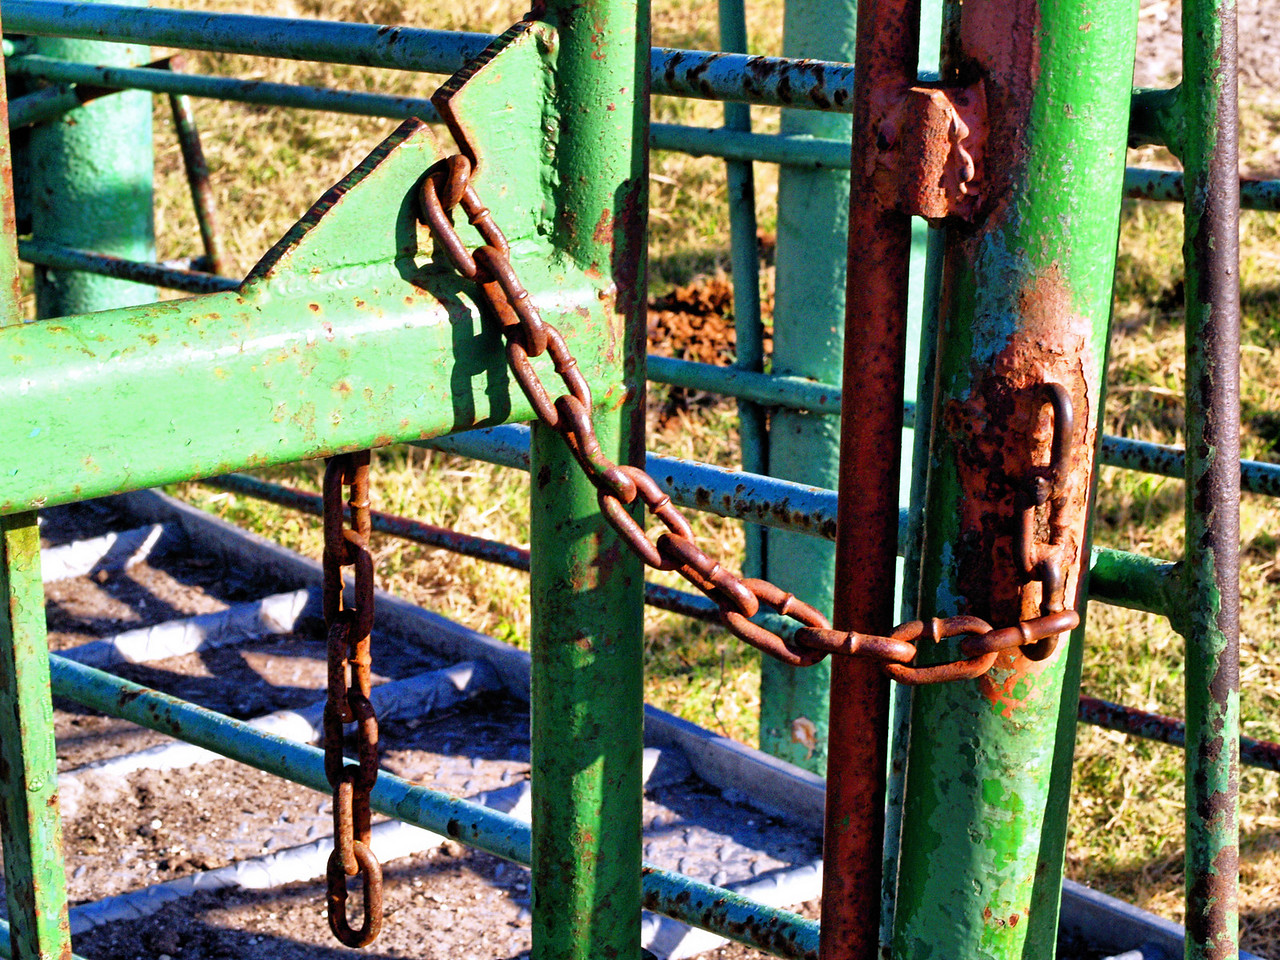 OLYMPUS DIGITAL CAMERA--The gate is closed, fastened by a chain.